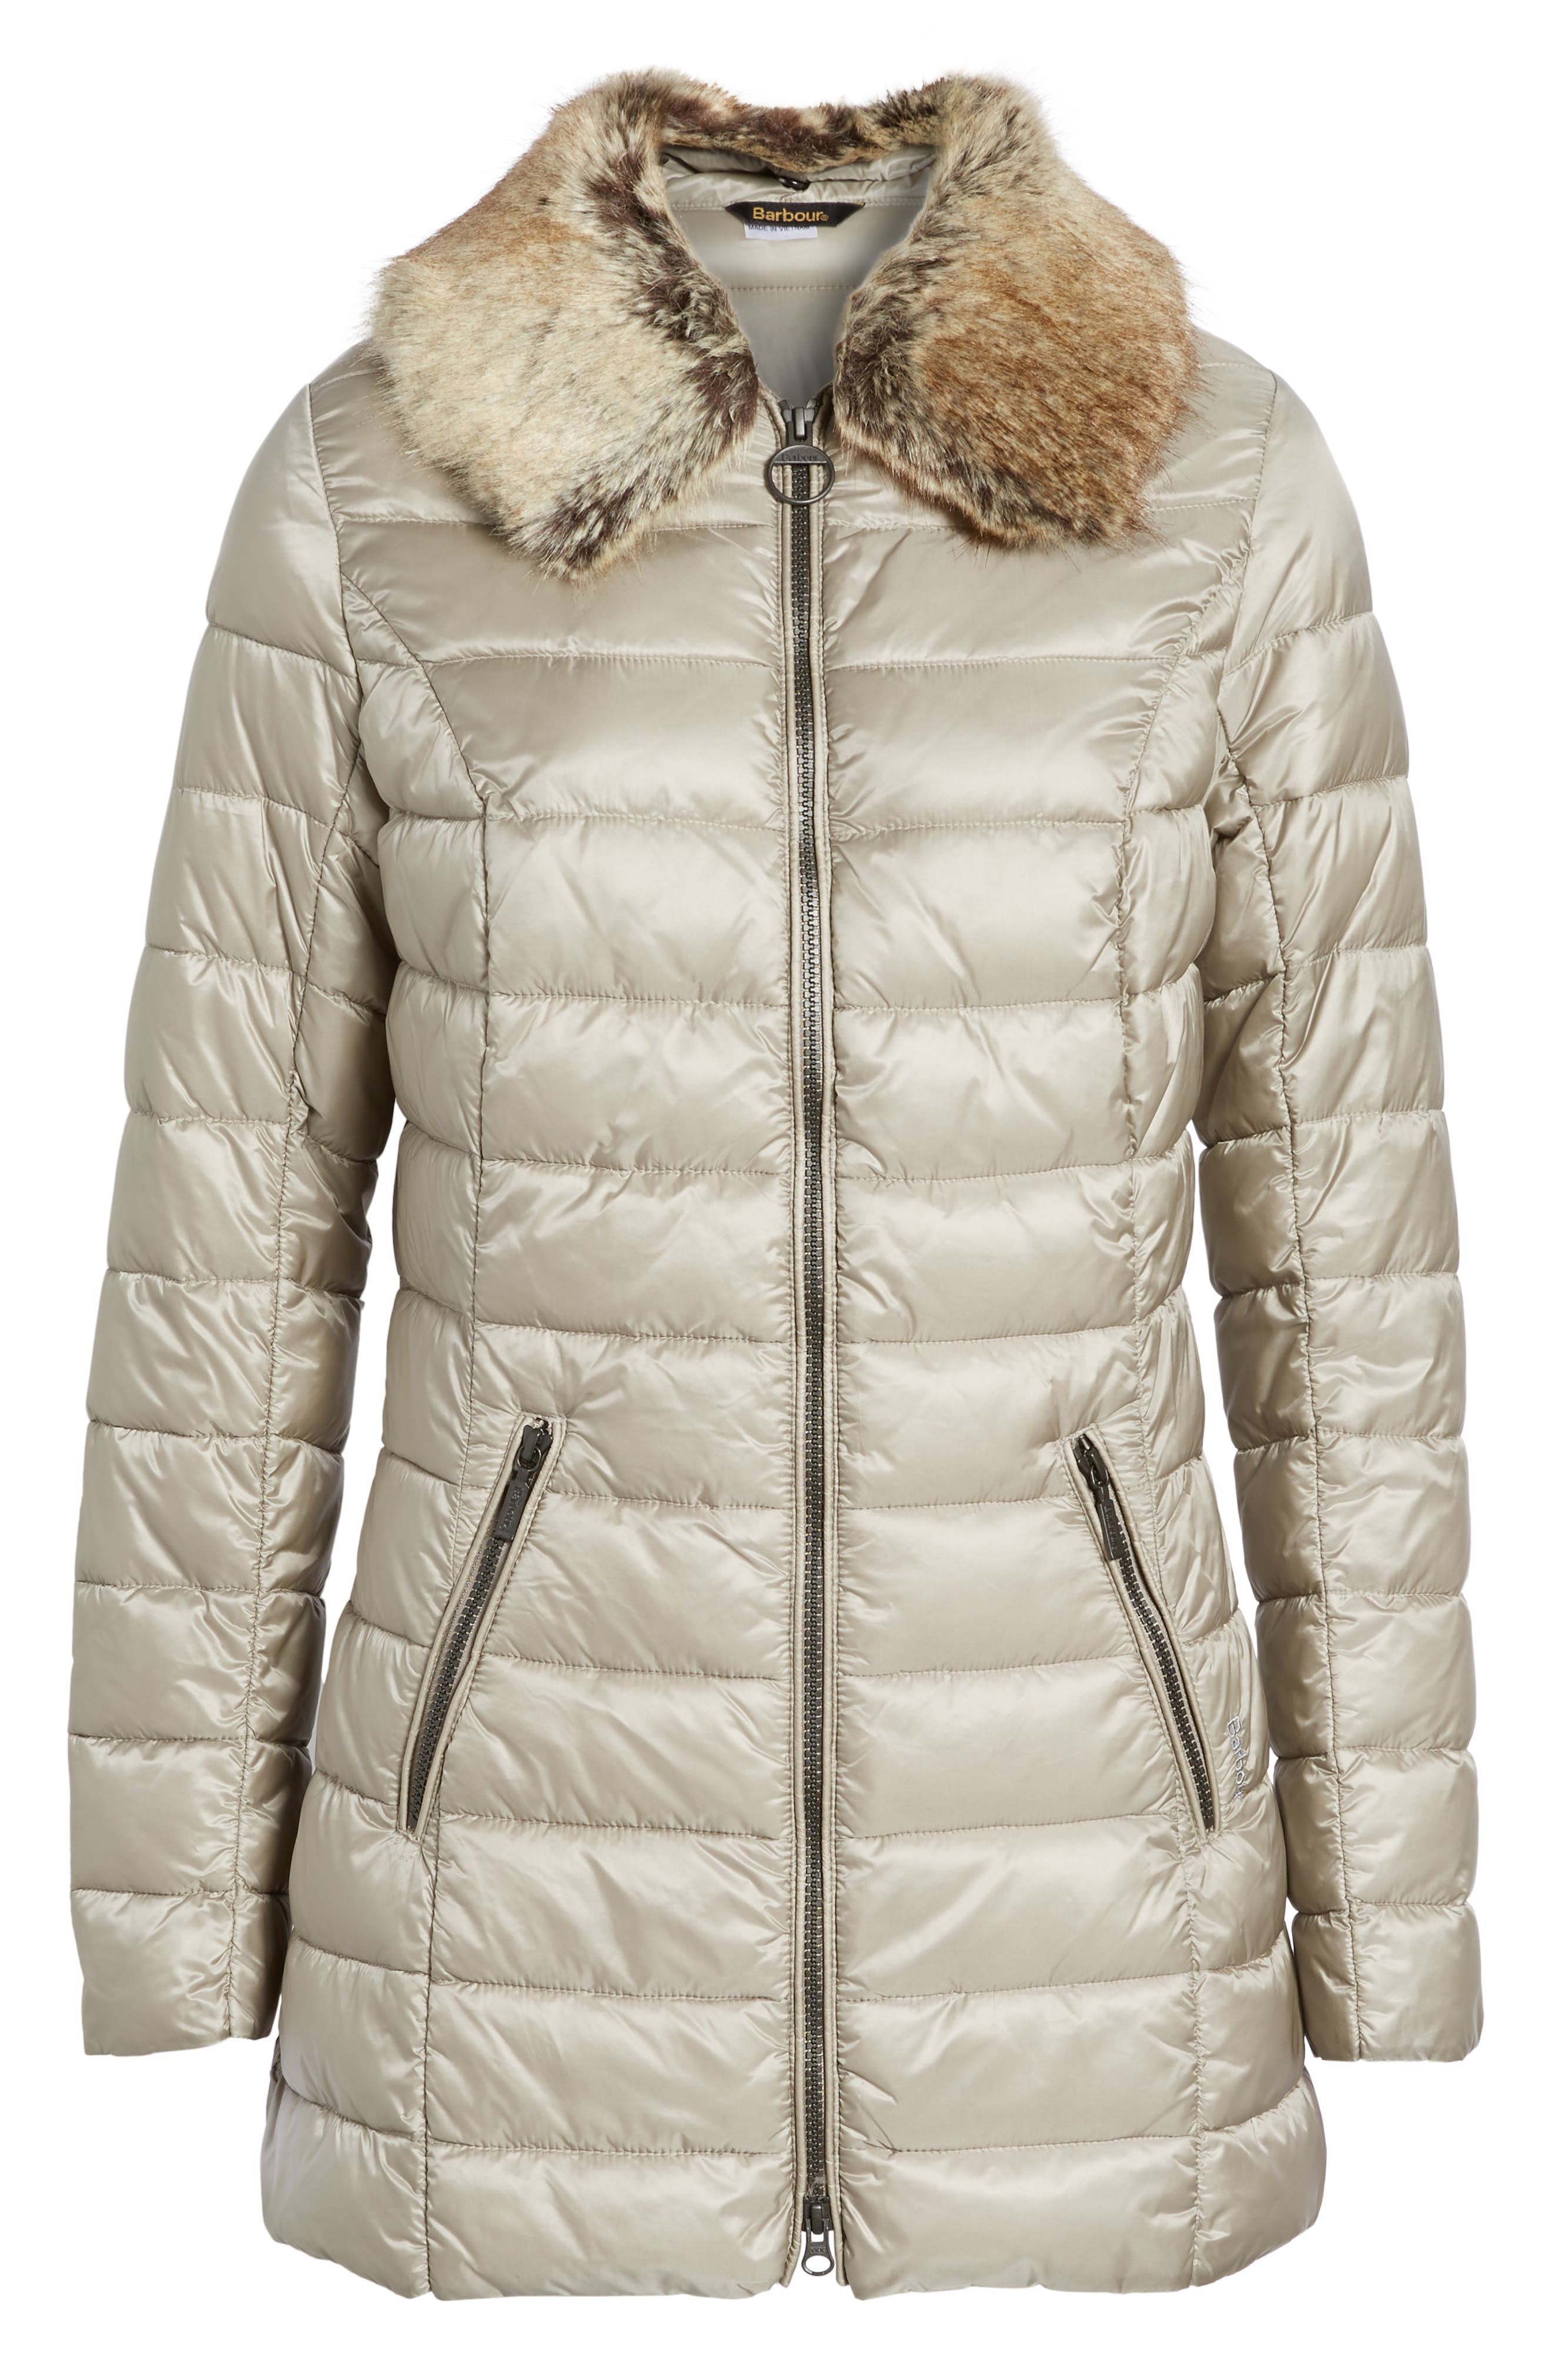 Rambleton Water Resistant Quilted Jacket with Faux Fur Collar,                             Alternate thumbnail 5, color,                             270